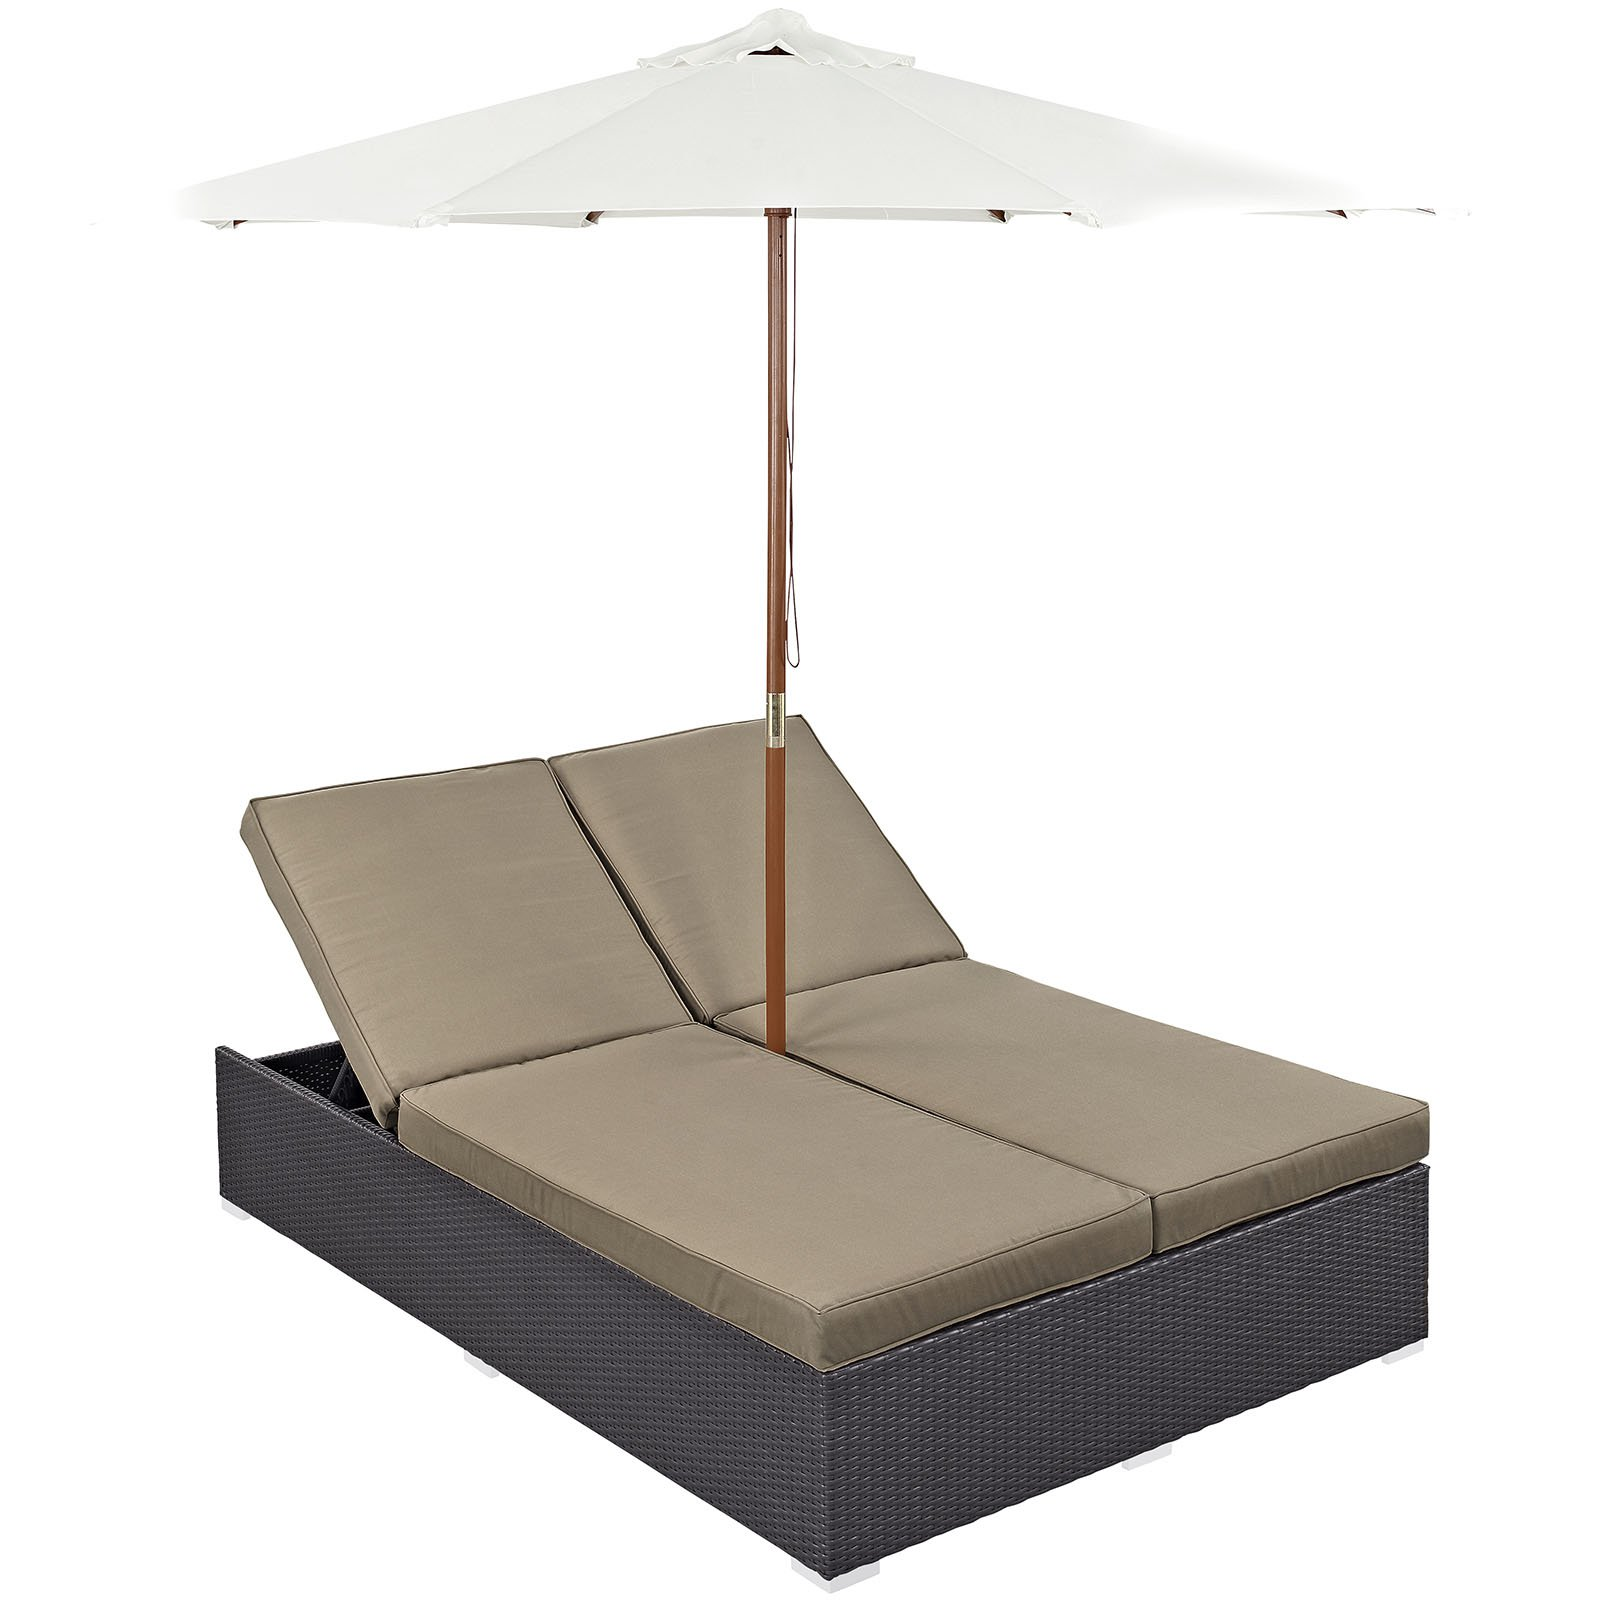 Modway Convene Double Outdoor Patio Chaise with Umbrella Multiple Colors - Walmart.com  sc 1 st  Walmart : walmart chaise - Sectionals, Sofas & Couches